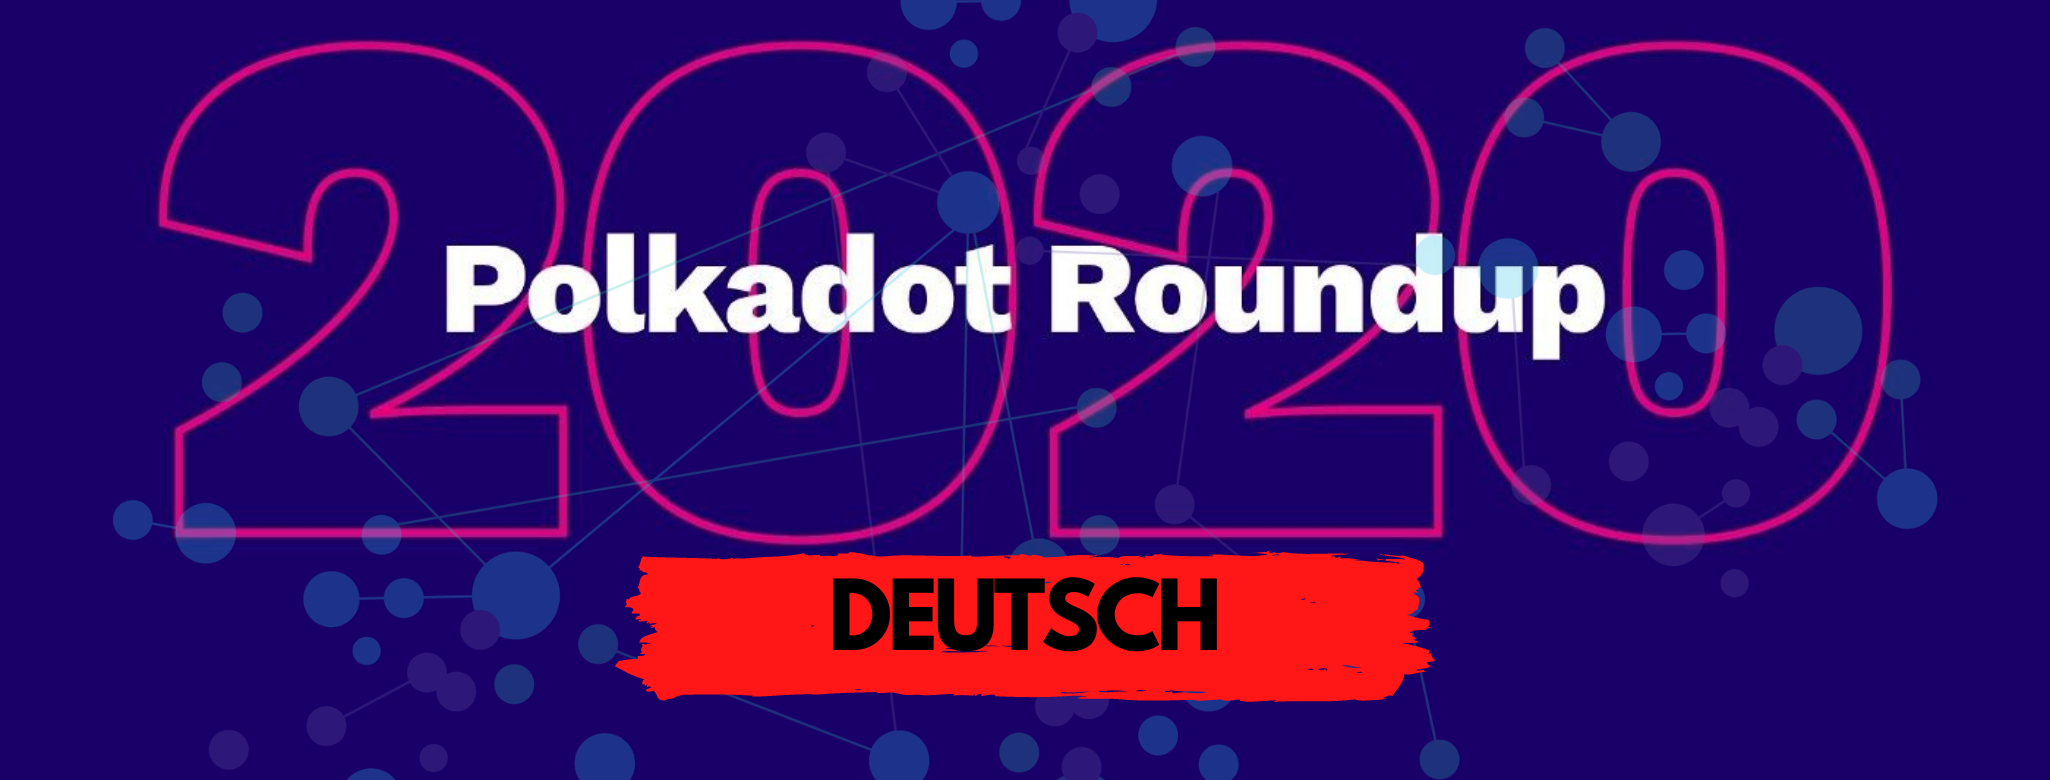 Polkadot Roundup 2020 deutsch